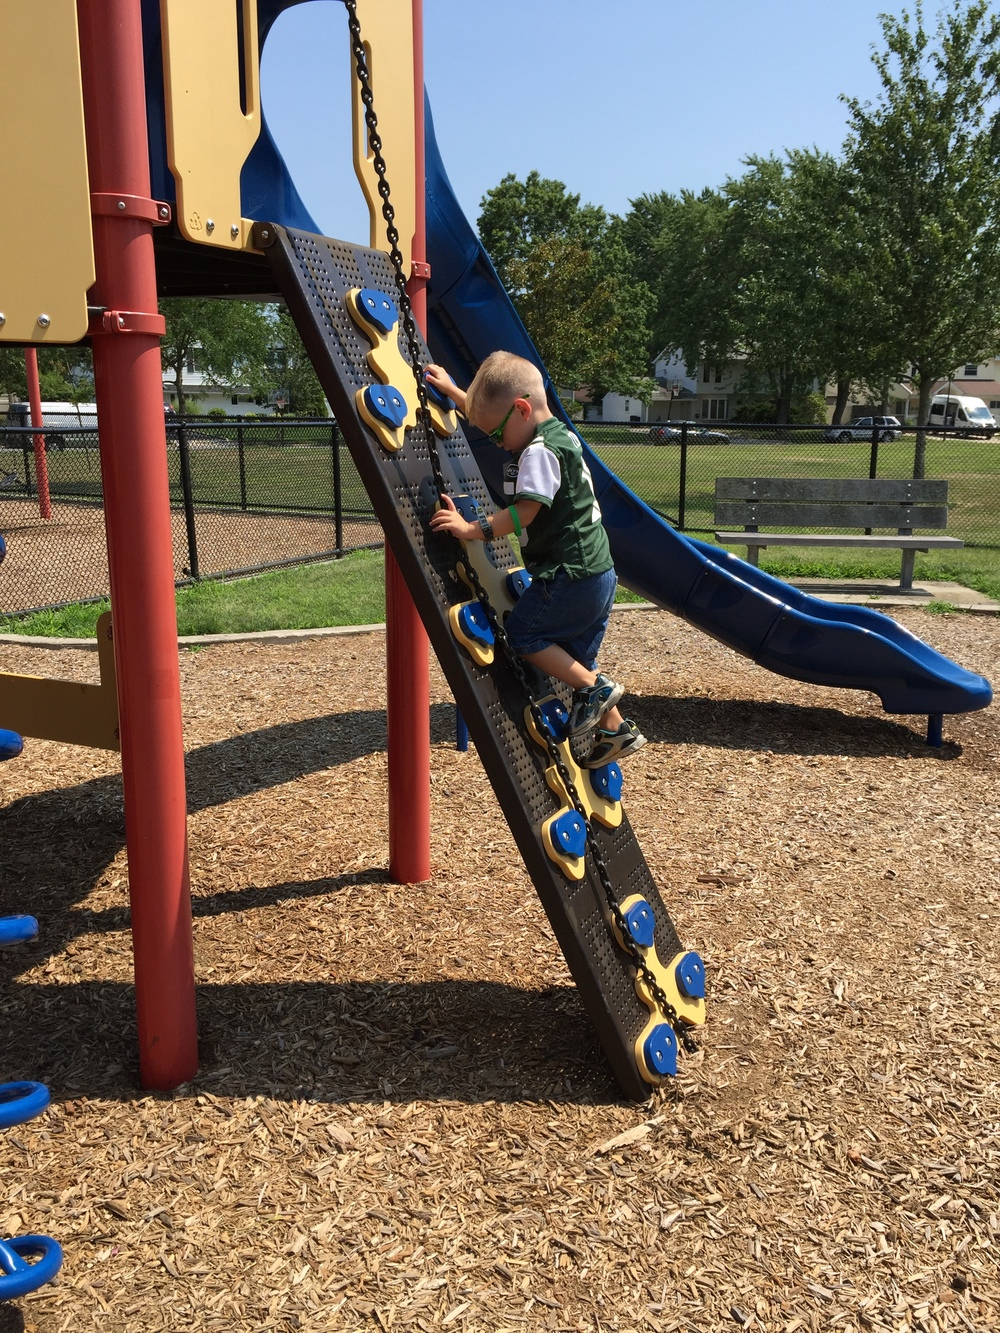 Climber at Red Maple Drive Playground